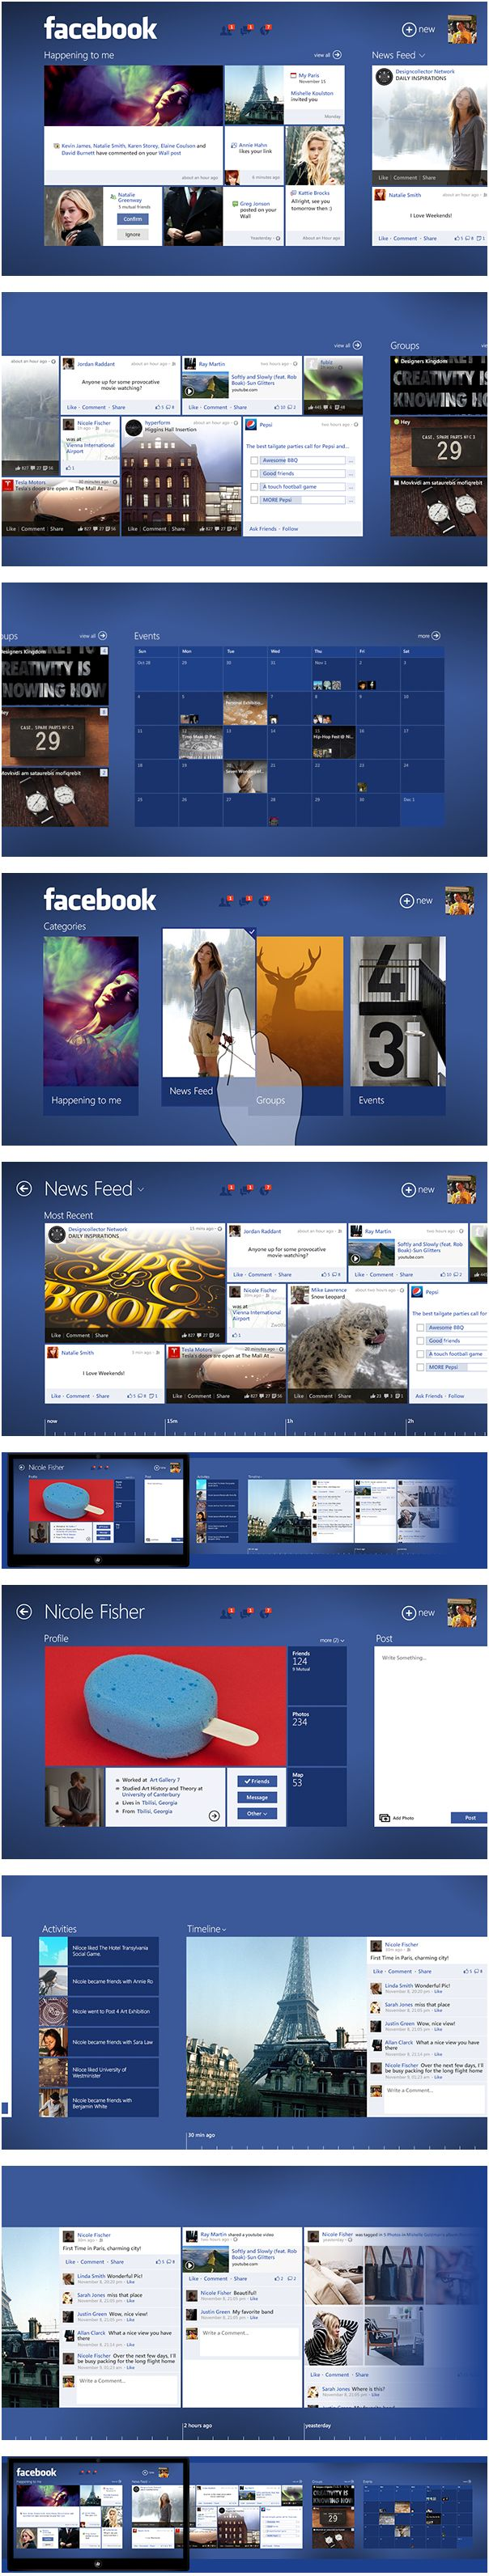 facebook-concept-windows-8